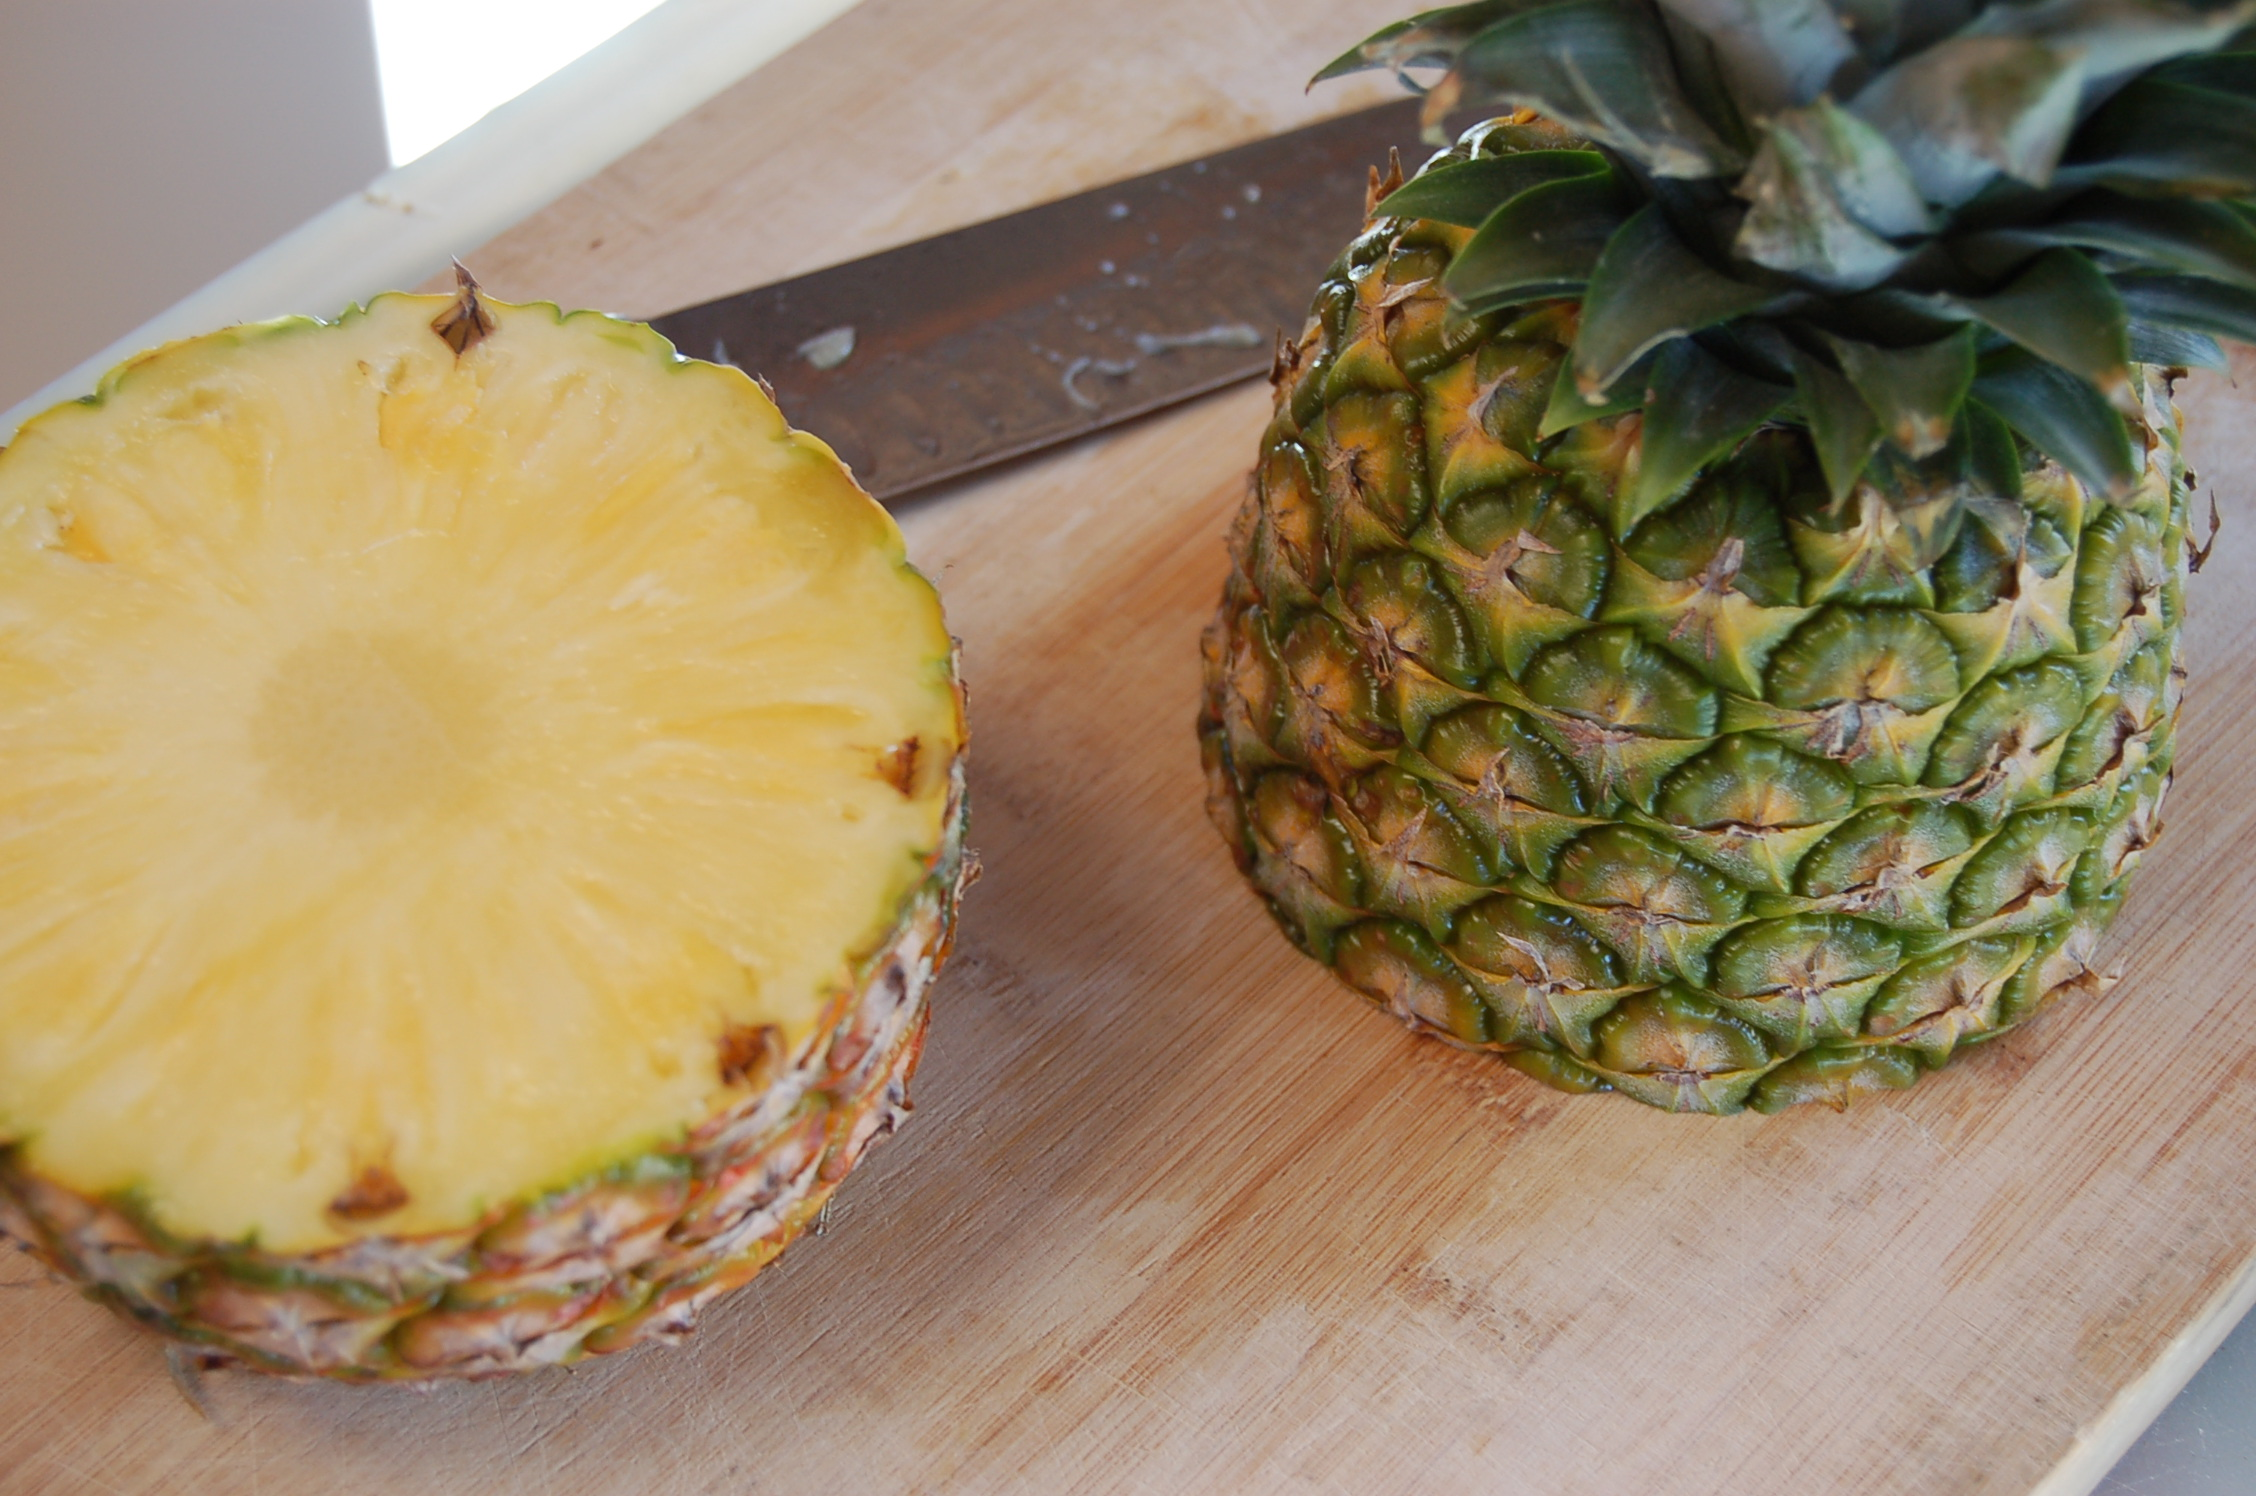 1 Cut pineapple in half